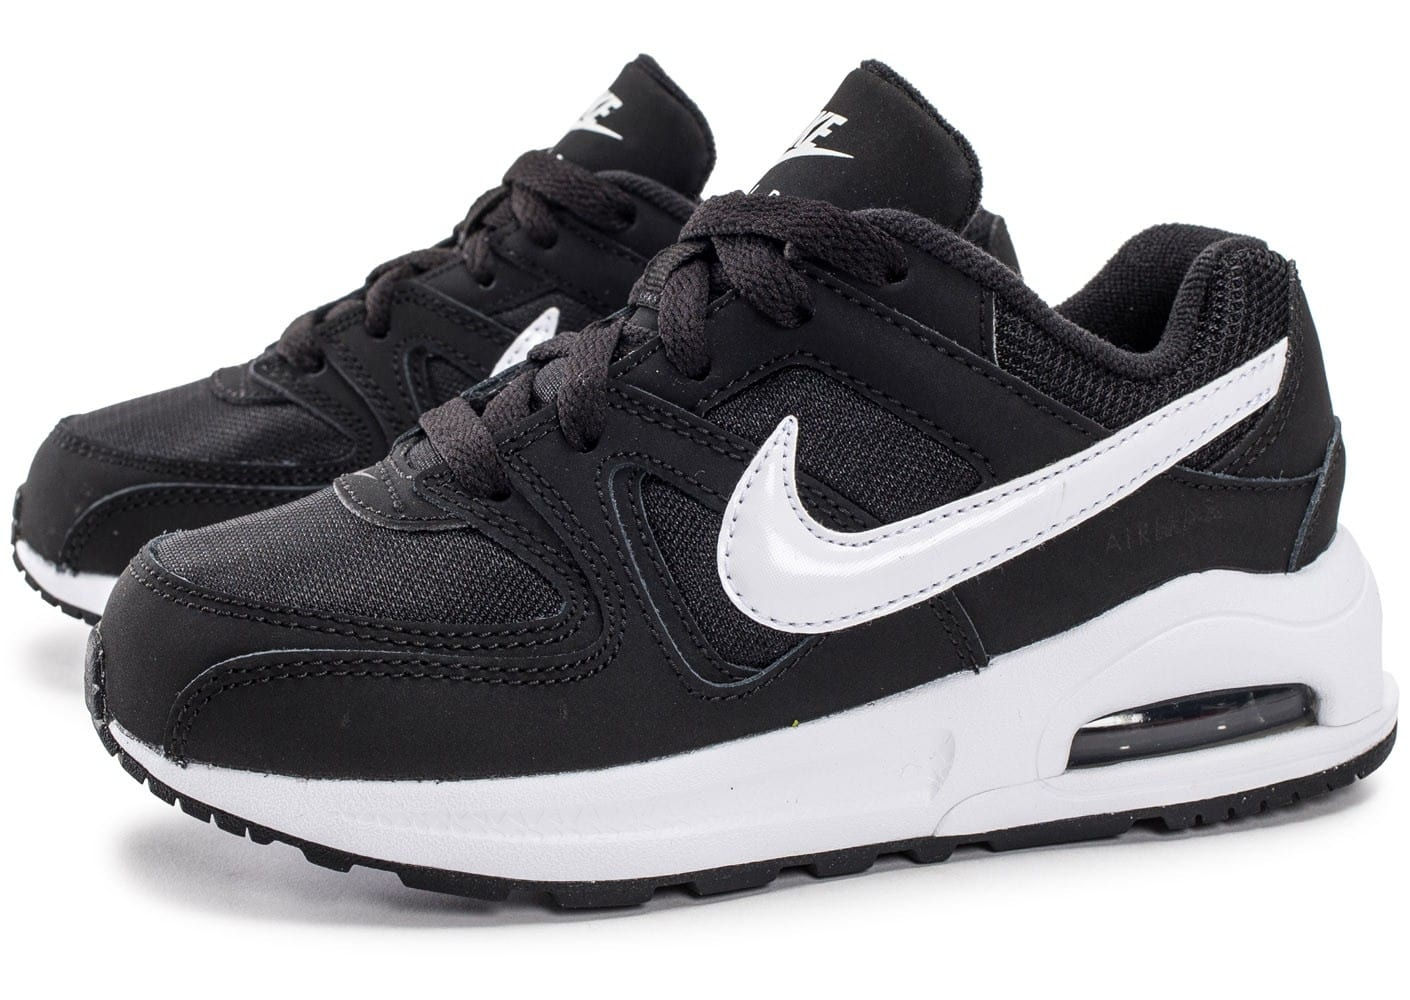 nike air max command enfant noire et blanche chaussures enfant chausport. Black Bedroom Furniture Sets. Home Design Ideas